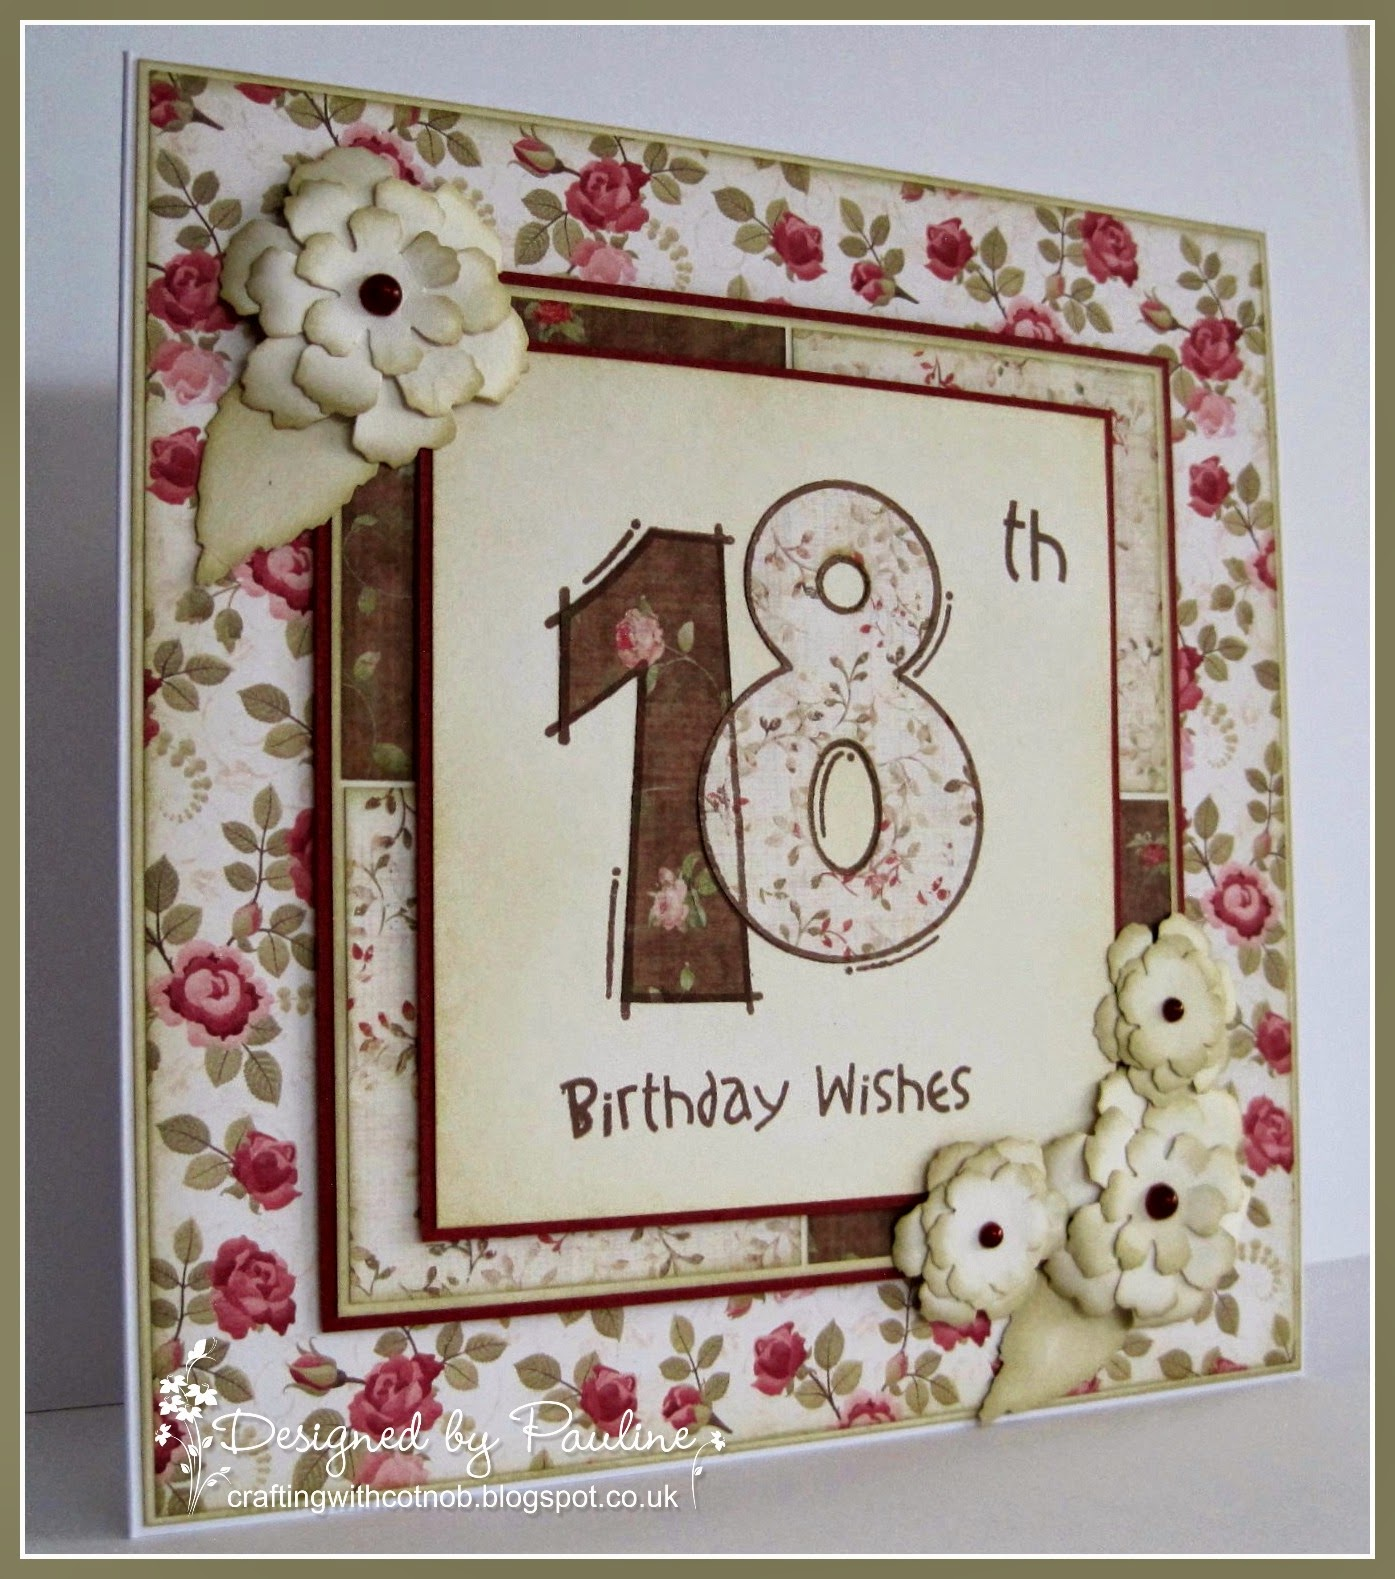 Crafting With Cotnob: Special 18th Birthday Wishes